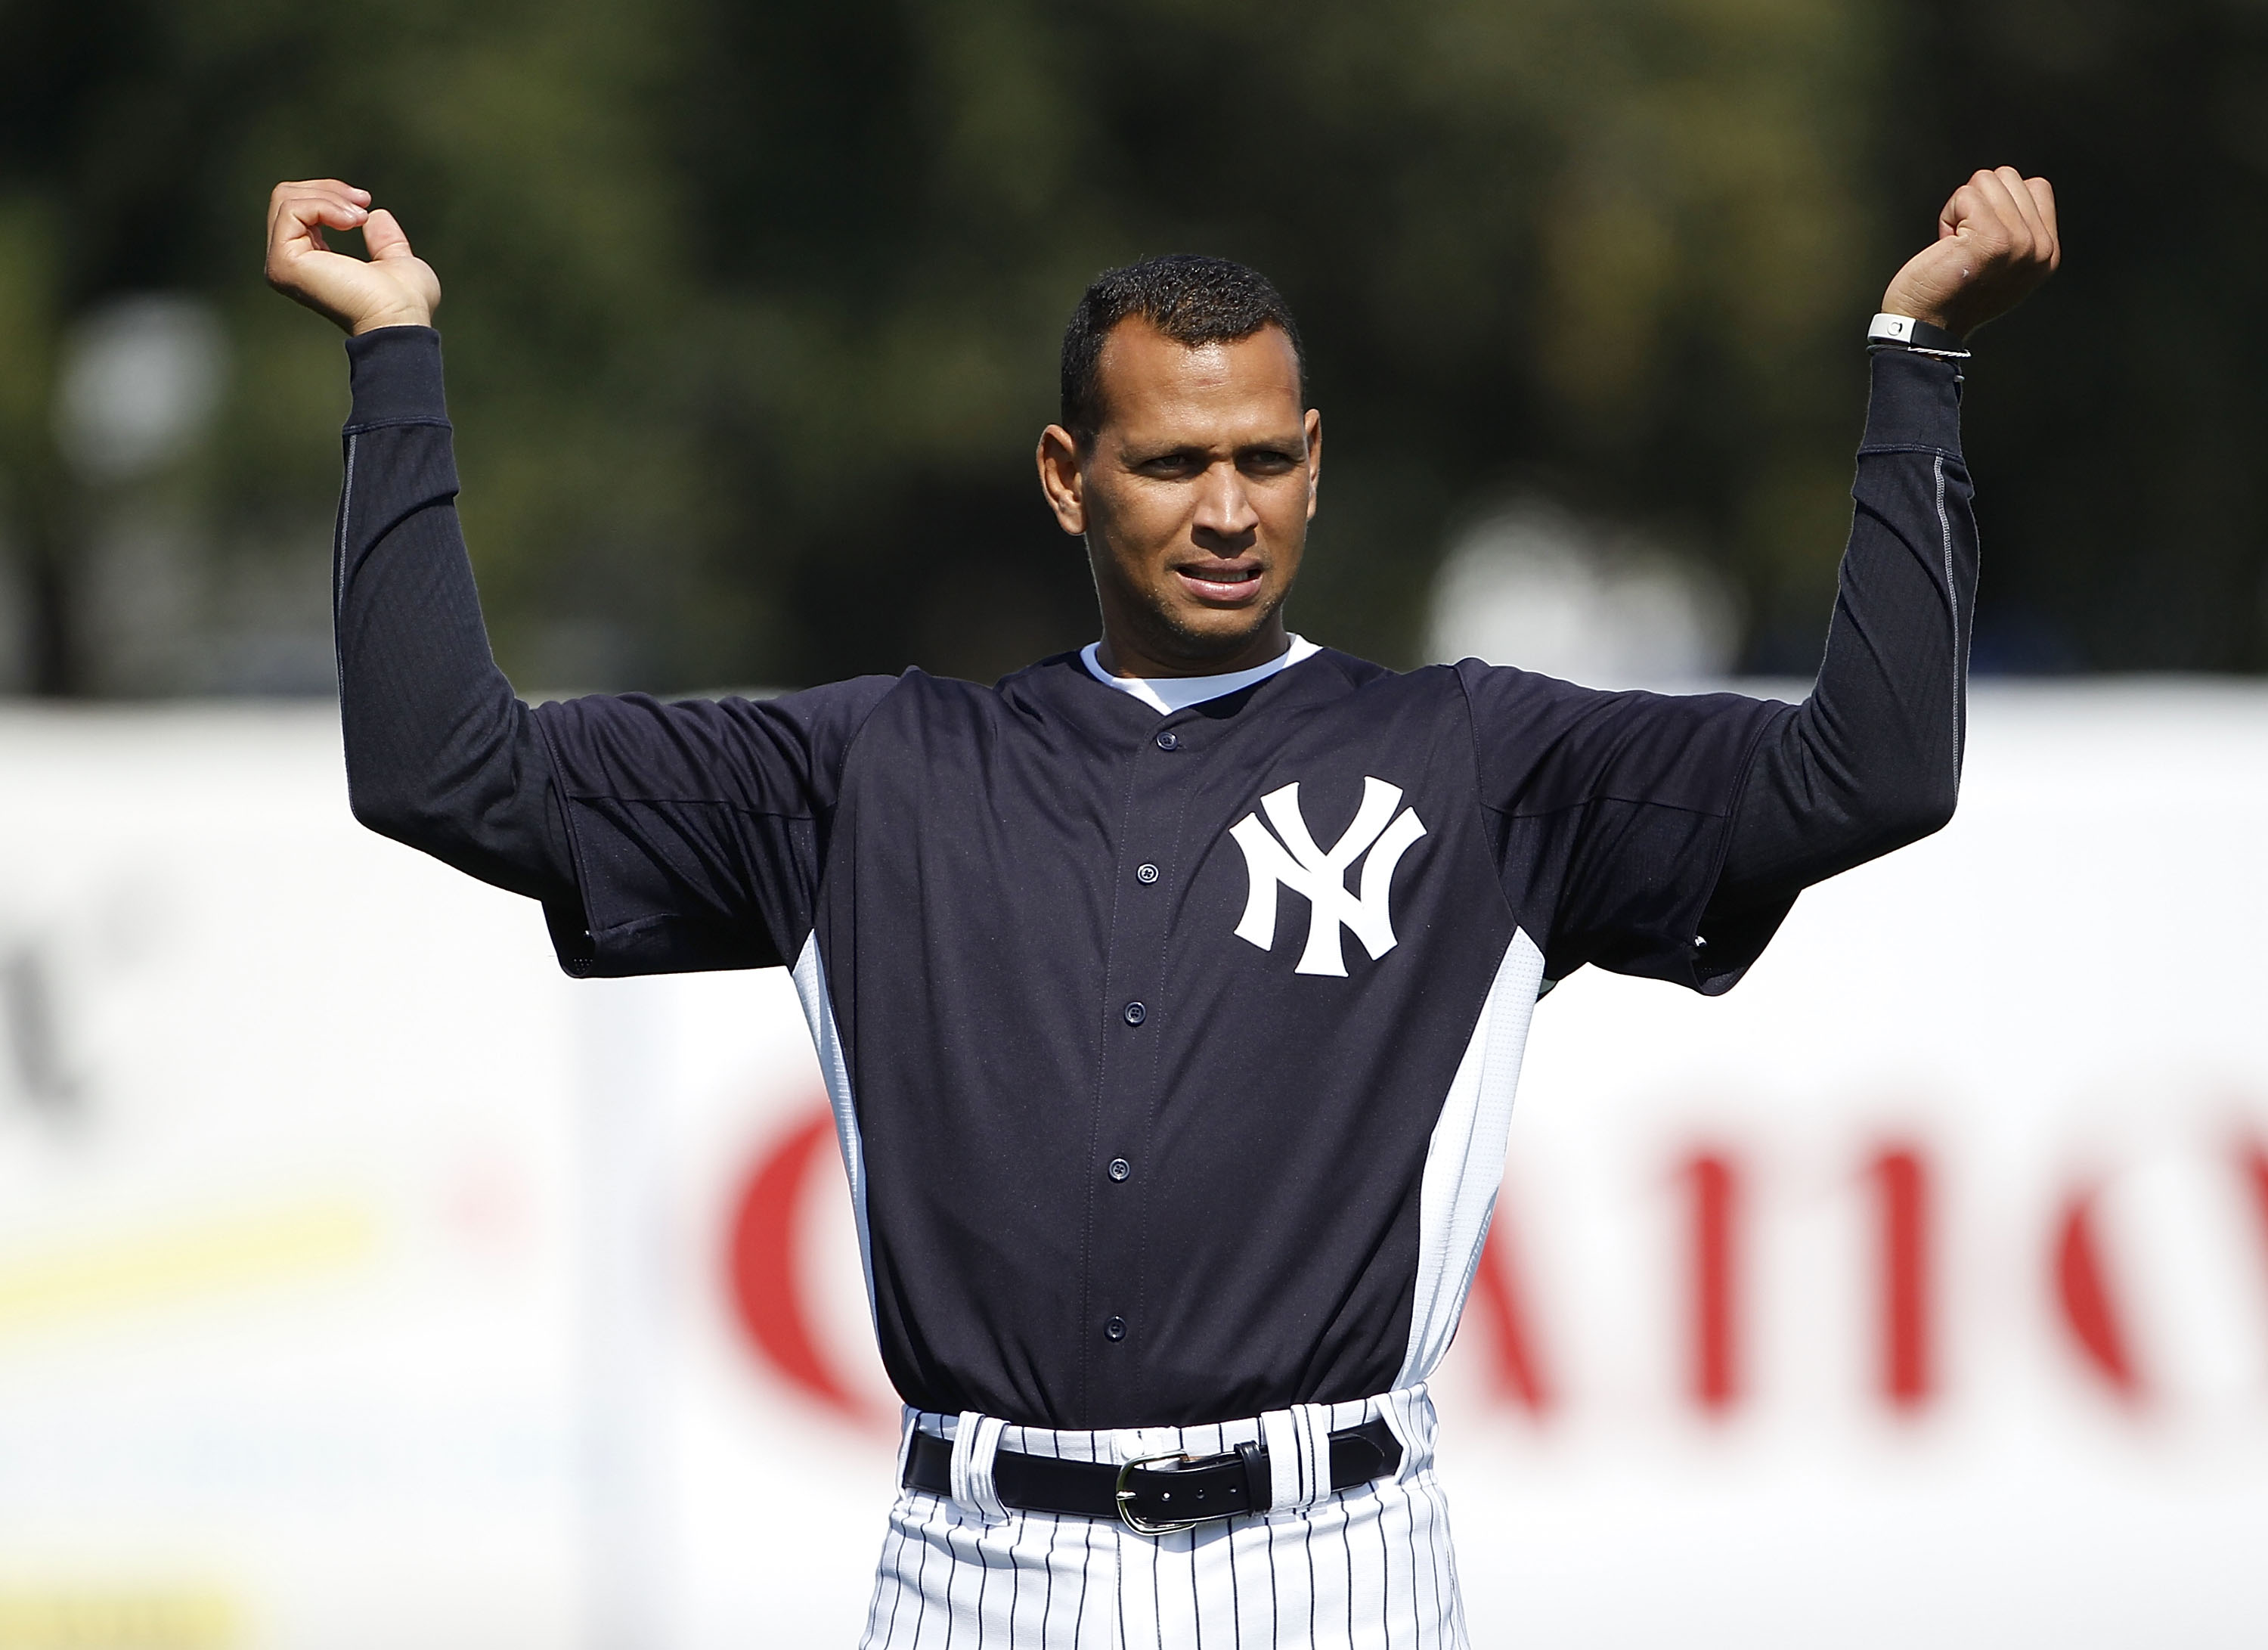 TAMPA, FL - FEBRUARY 20: Alex Rodriguez #13 of the New York Yankees stretches prior to the start if the first full team workout of Spring Training on February 20, 2011 at the George M. Steinbrenner Field in Tampa, Florida.  (Photo by Leon Halip/Getty Imag